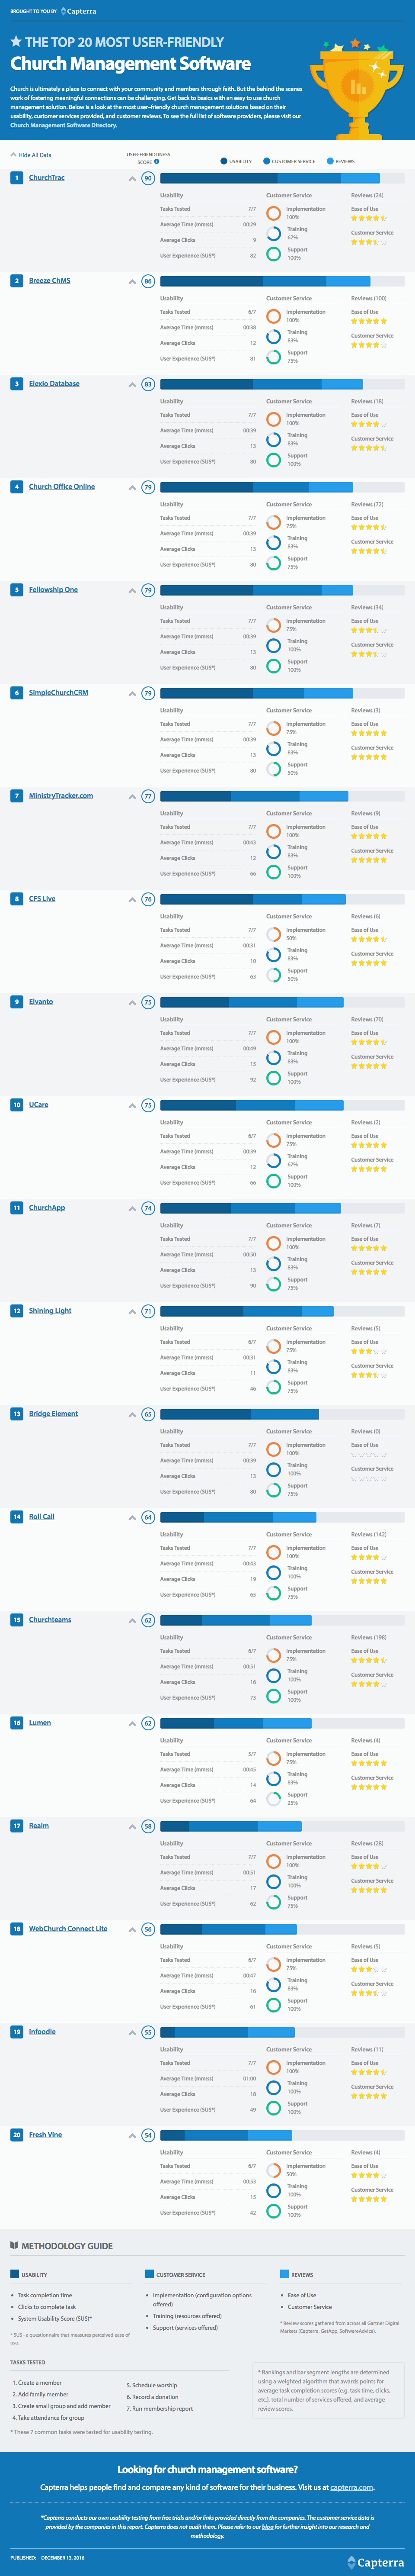 Top 20 Most User-Friendly Church Management Software